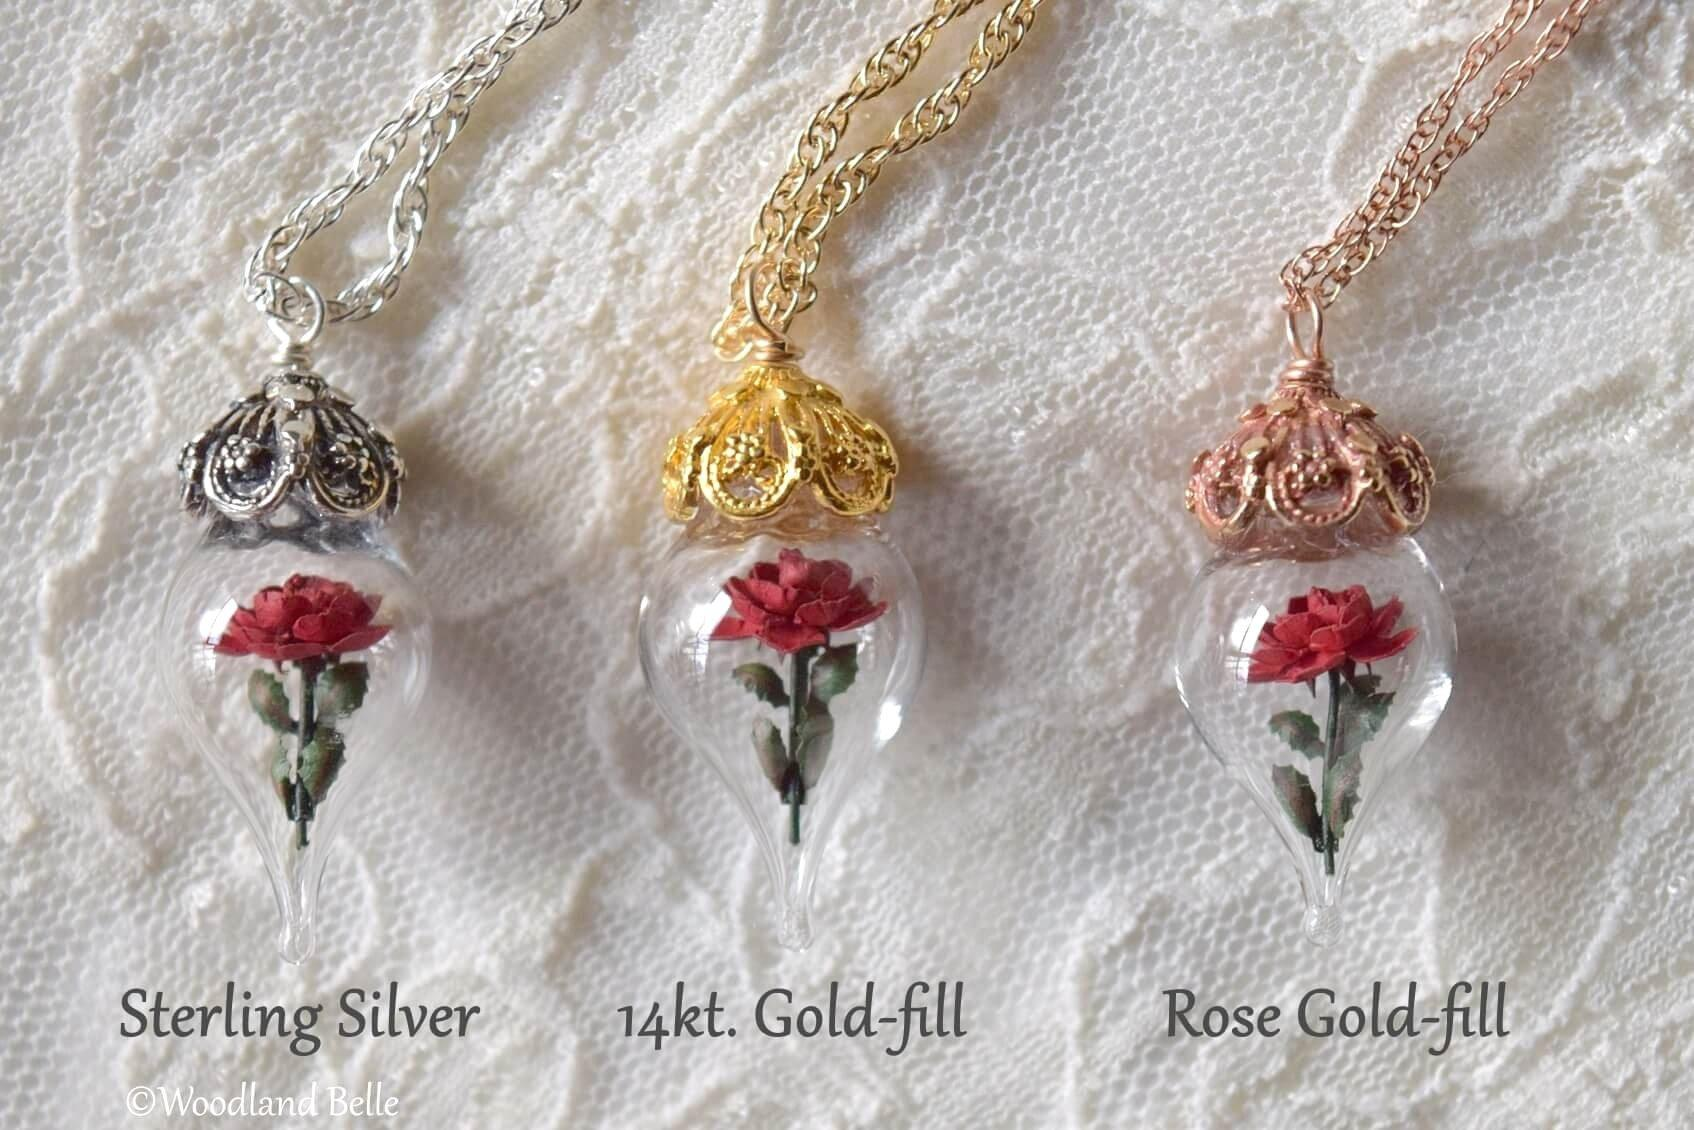 Snowdrop Necklace - White Snowdrop Flower Glass Pendant - Sterling Silver, Gold, or Rose Gold - Personalized Gift - by Woodland Belle